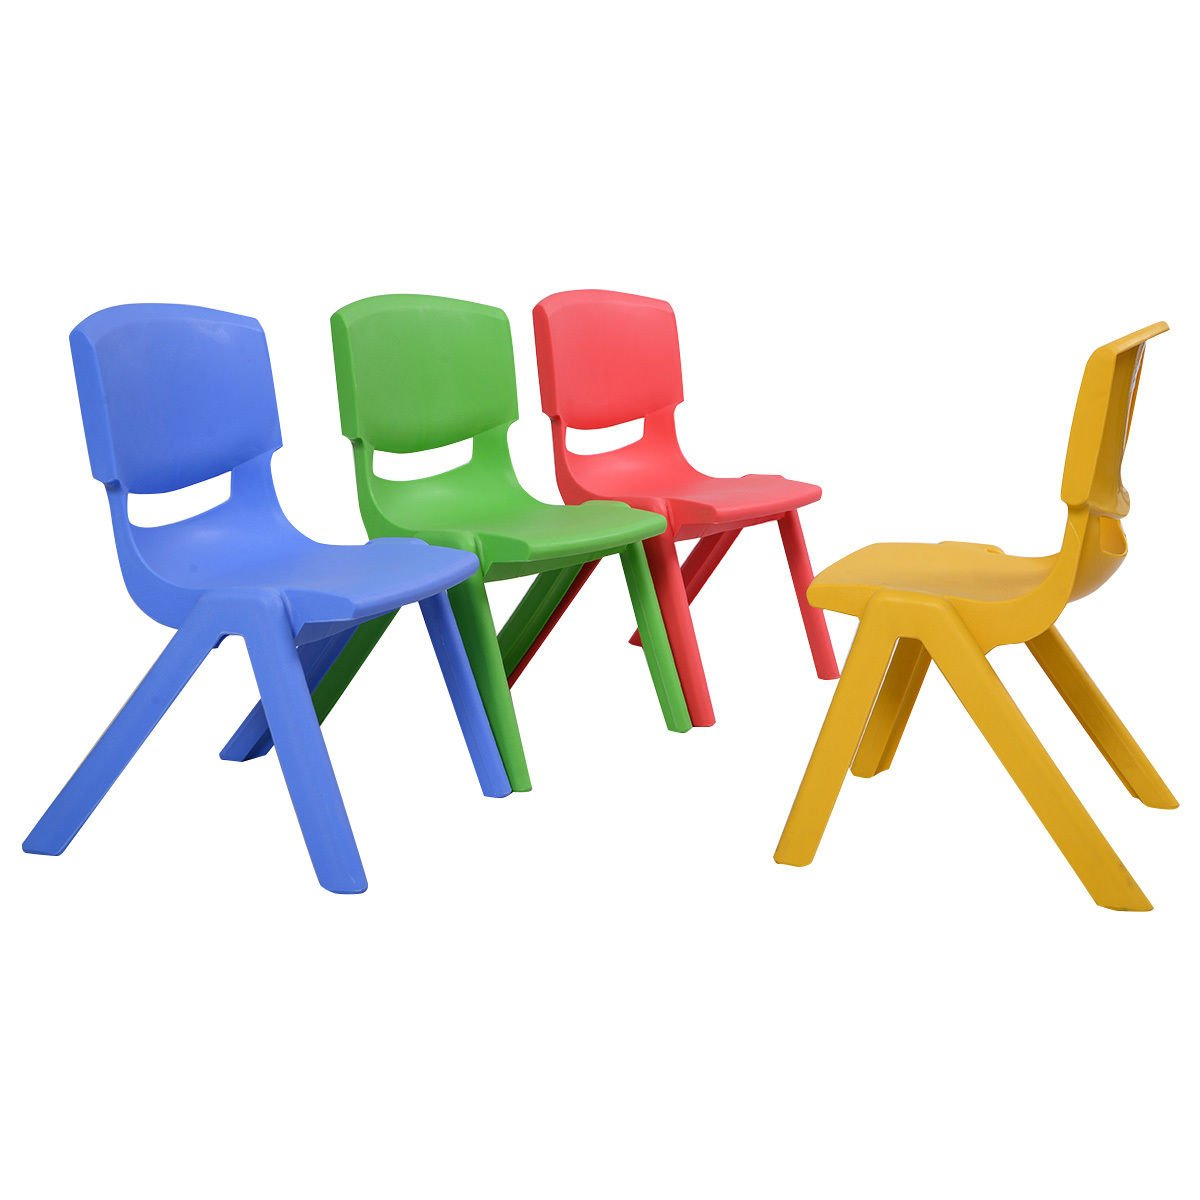 4Pcs Multi Color Kids Stackable Plastic Chairs Lightweight